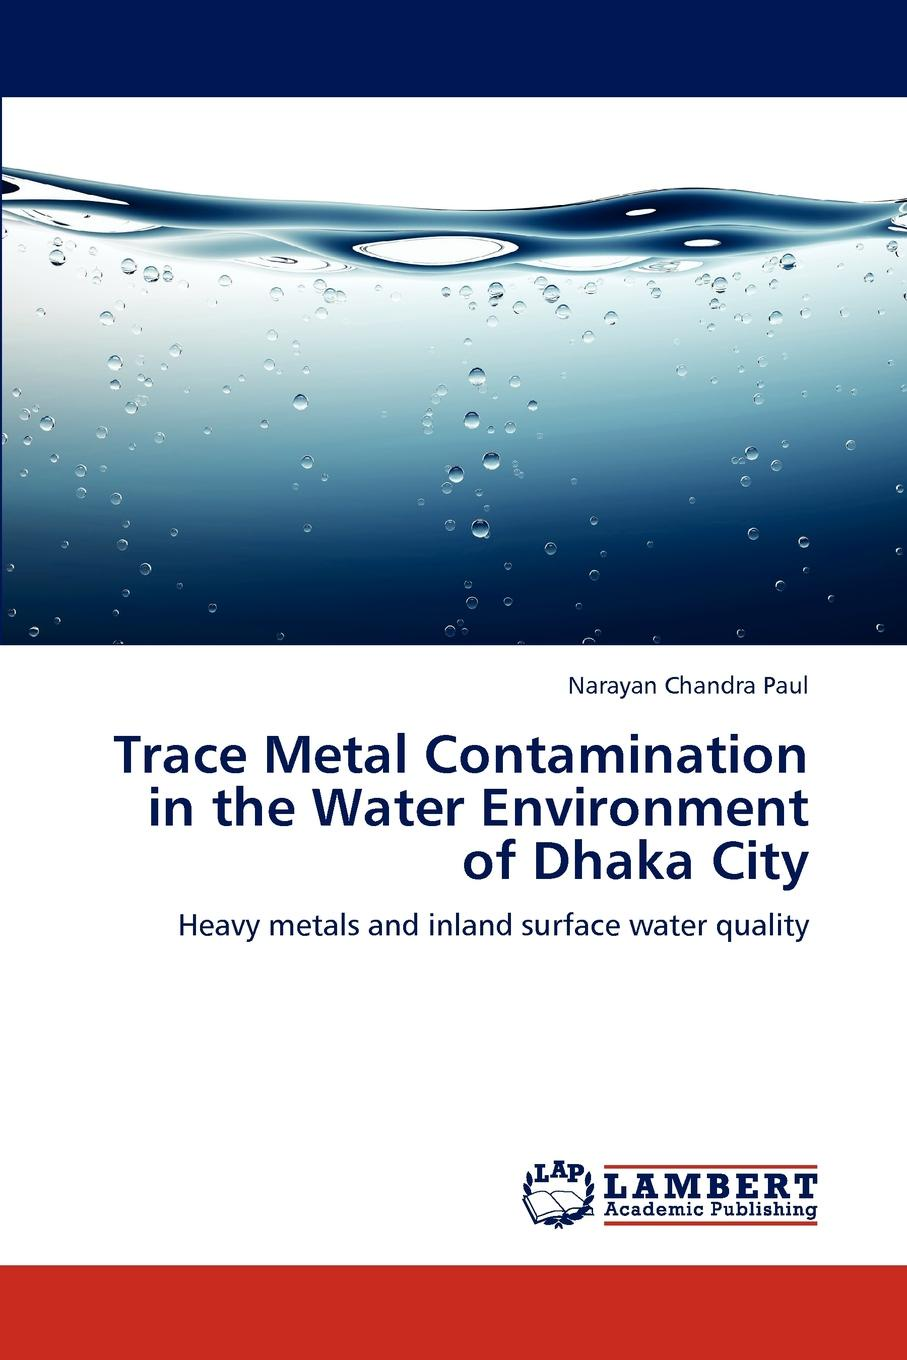 купить Narayan Chandra Paul Trace Metal Contamination in the Water Environment of Dhaka City по цене 8927 рублей